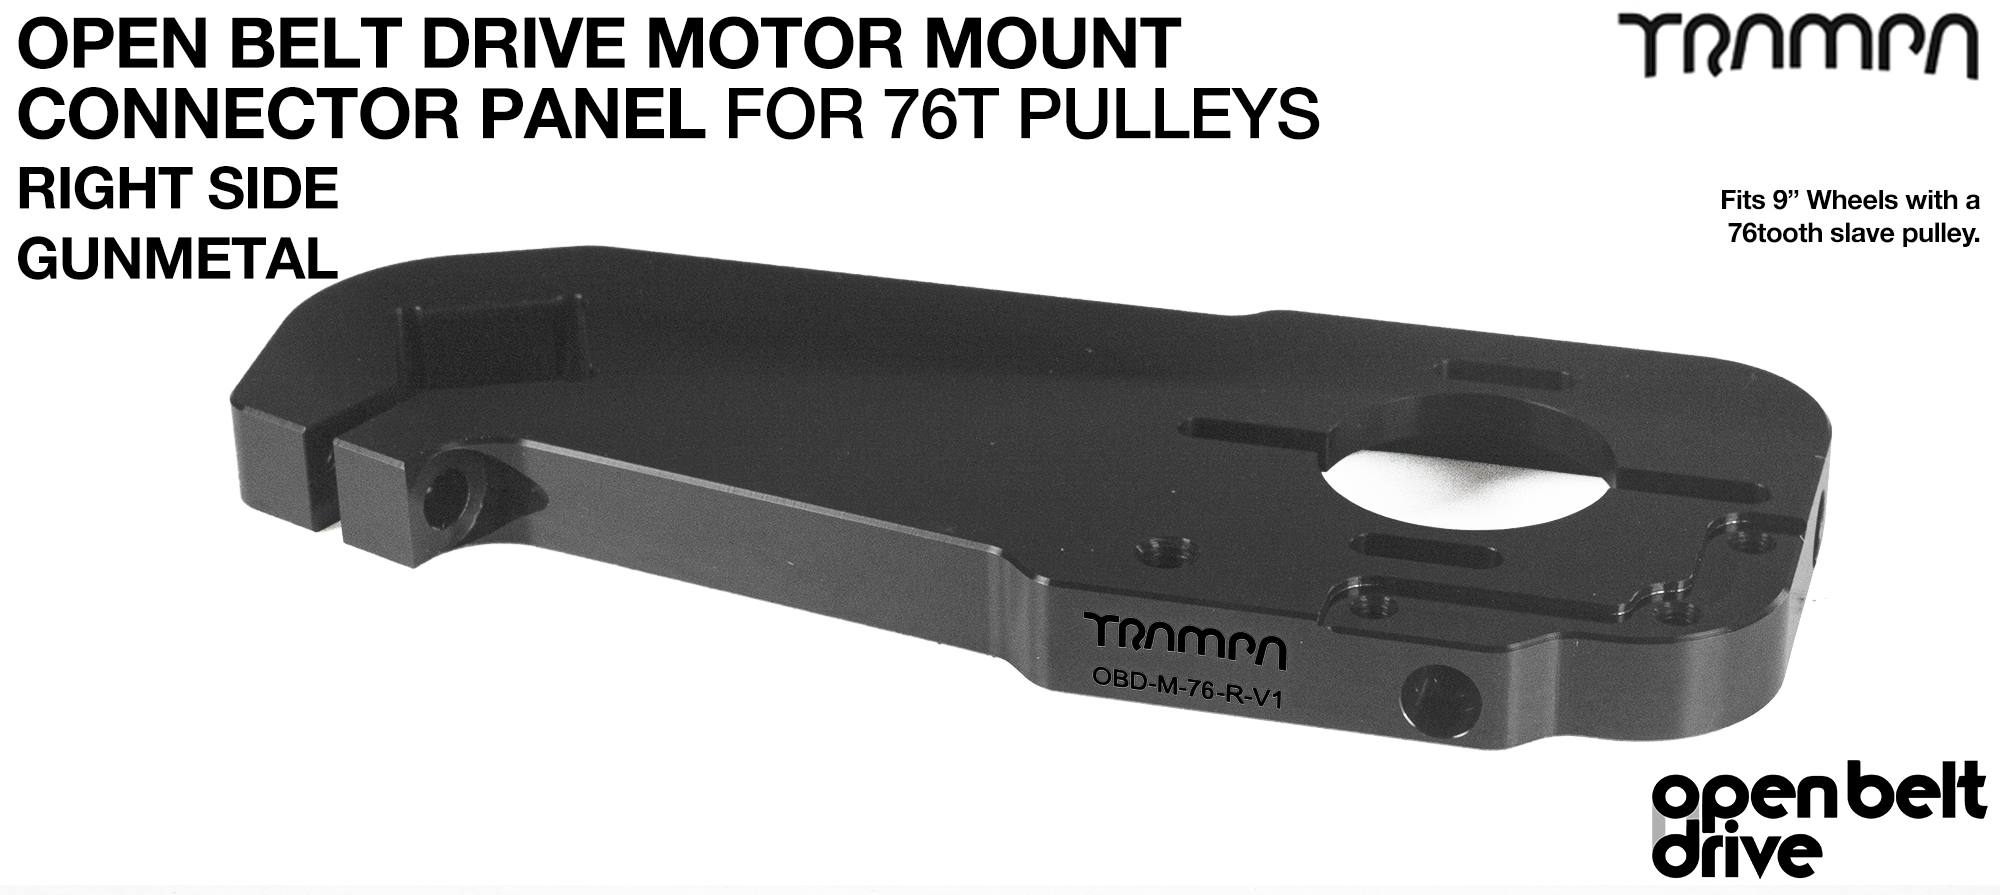 OBD Motor Mount Connector Panel for 76 tooth Pulleys - GOOFY - GUNMETAL